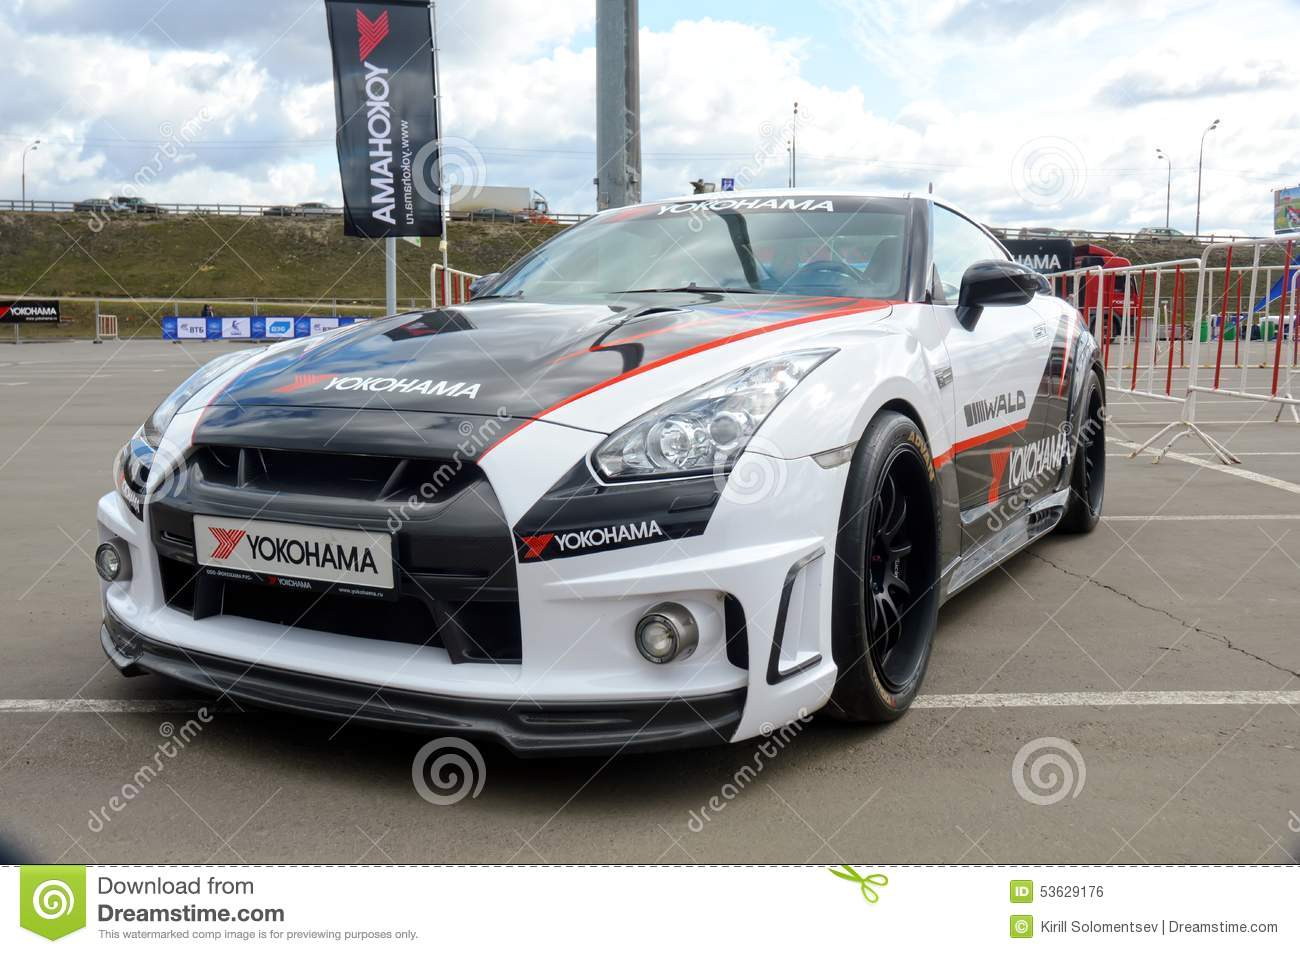 Voiture de course nissan gtr photo ditorial image 53629176 - Voiture de course image ...